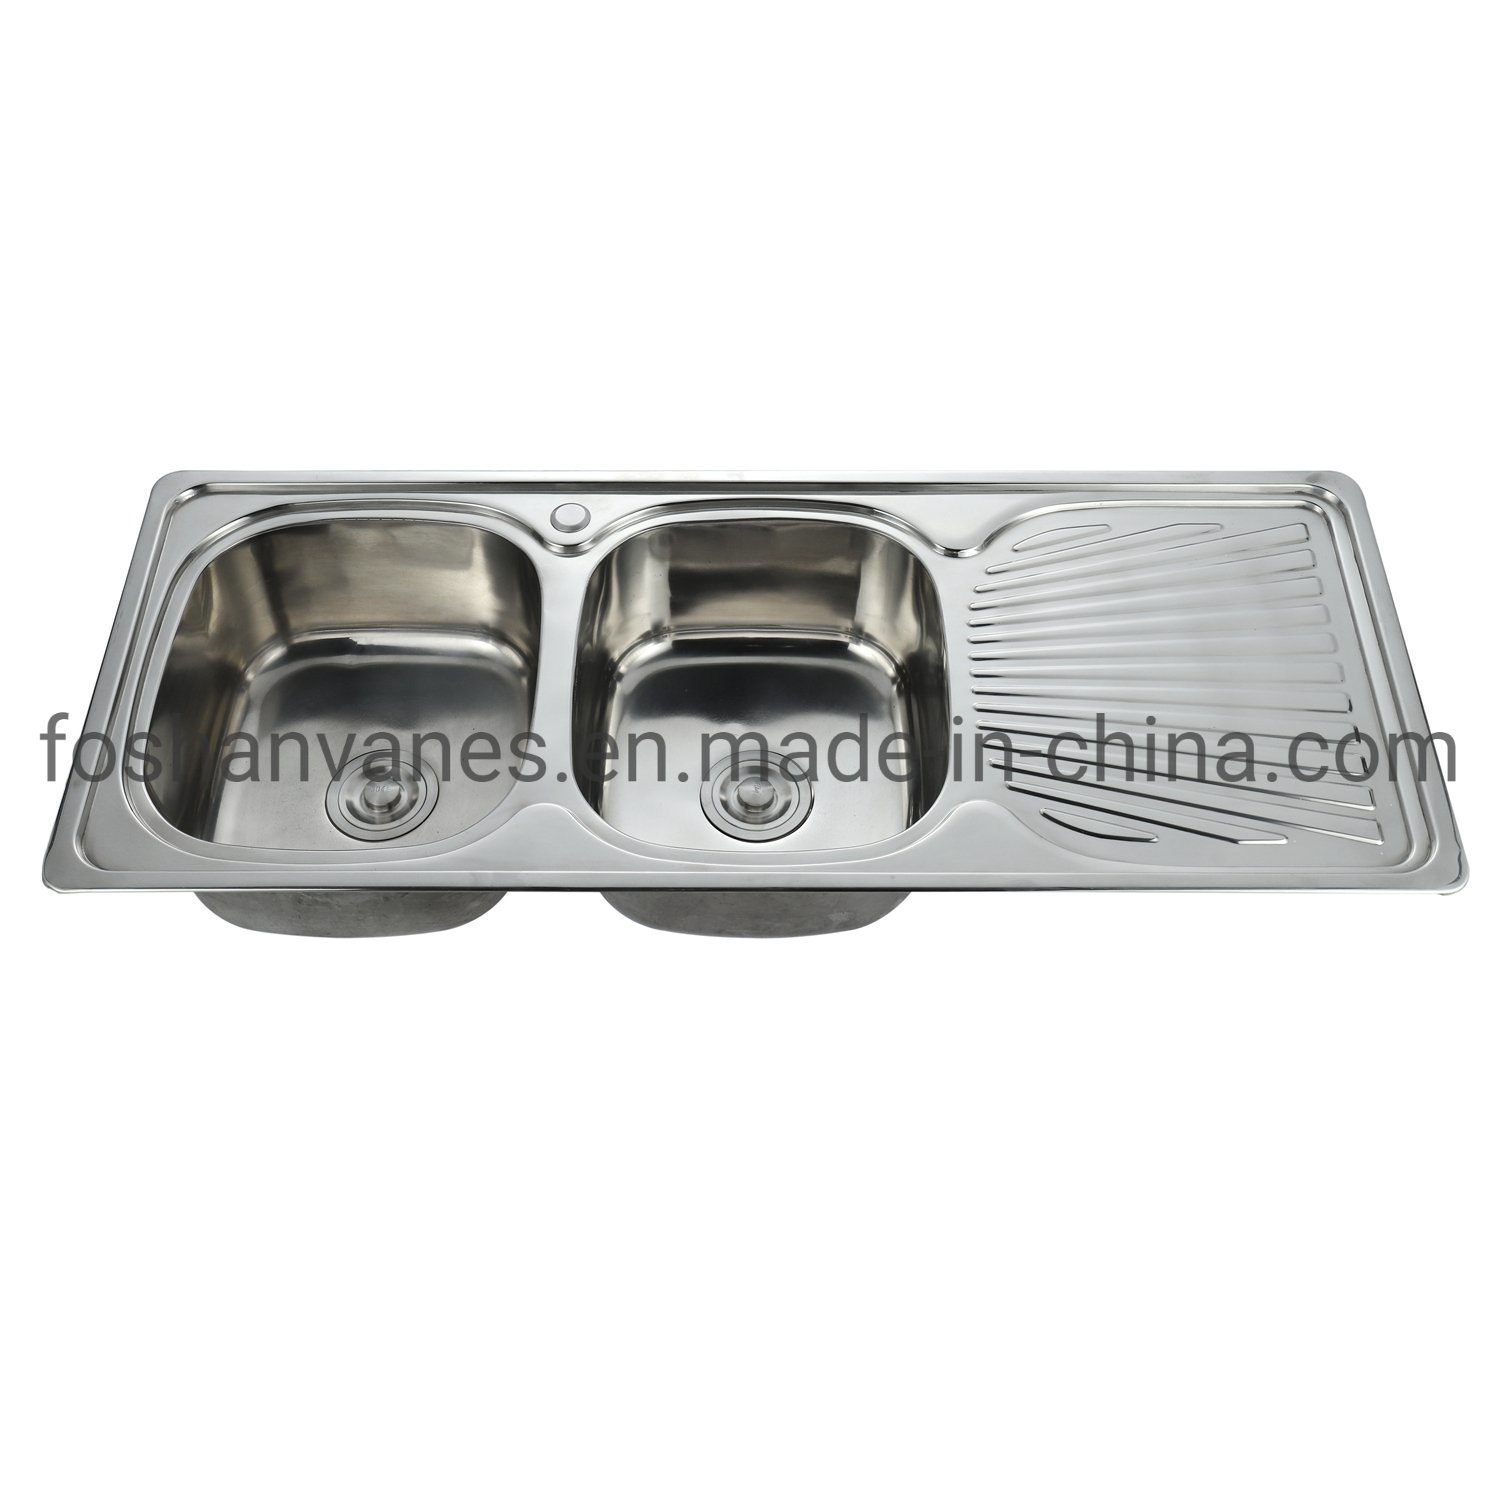 Image of: China Double Basin Stainless Steel Sink Polished Color Kitchen Wash Basin Undermount With Drainboard Ls 12050a China Double Basin Stainless Steel Sink